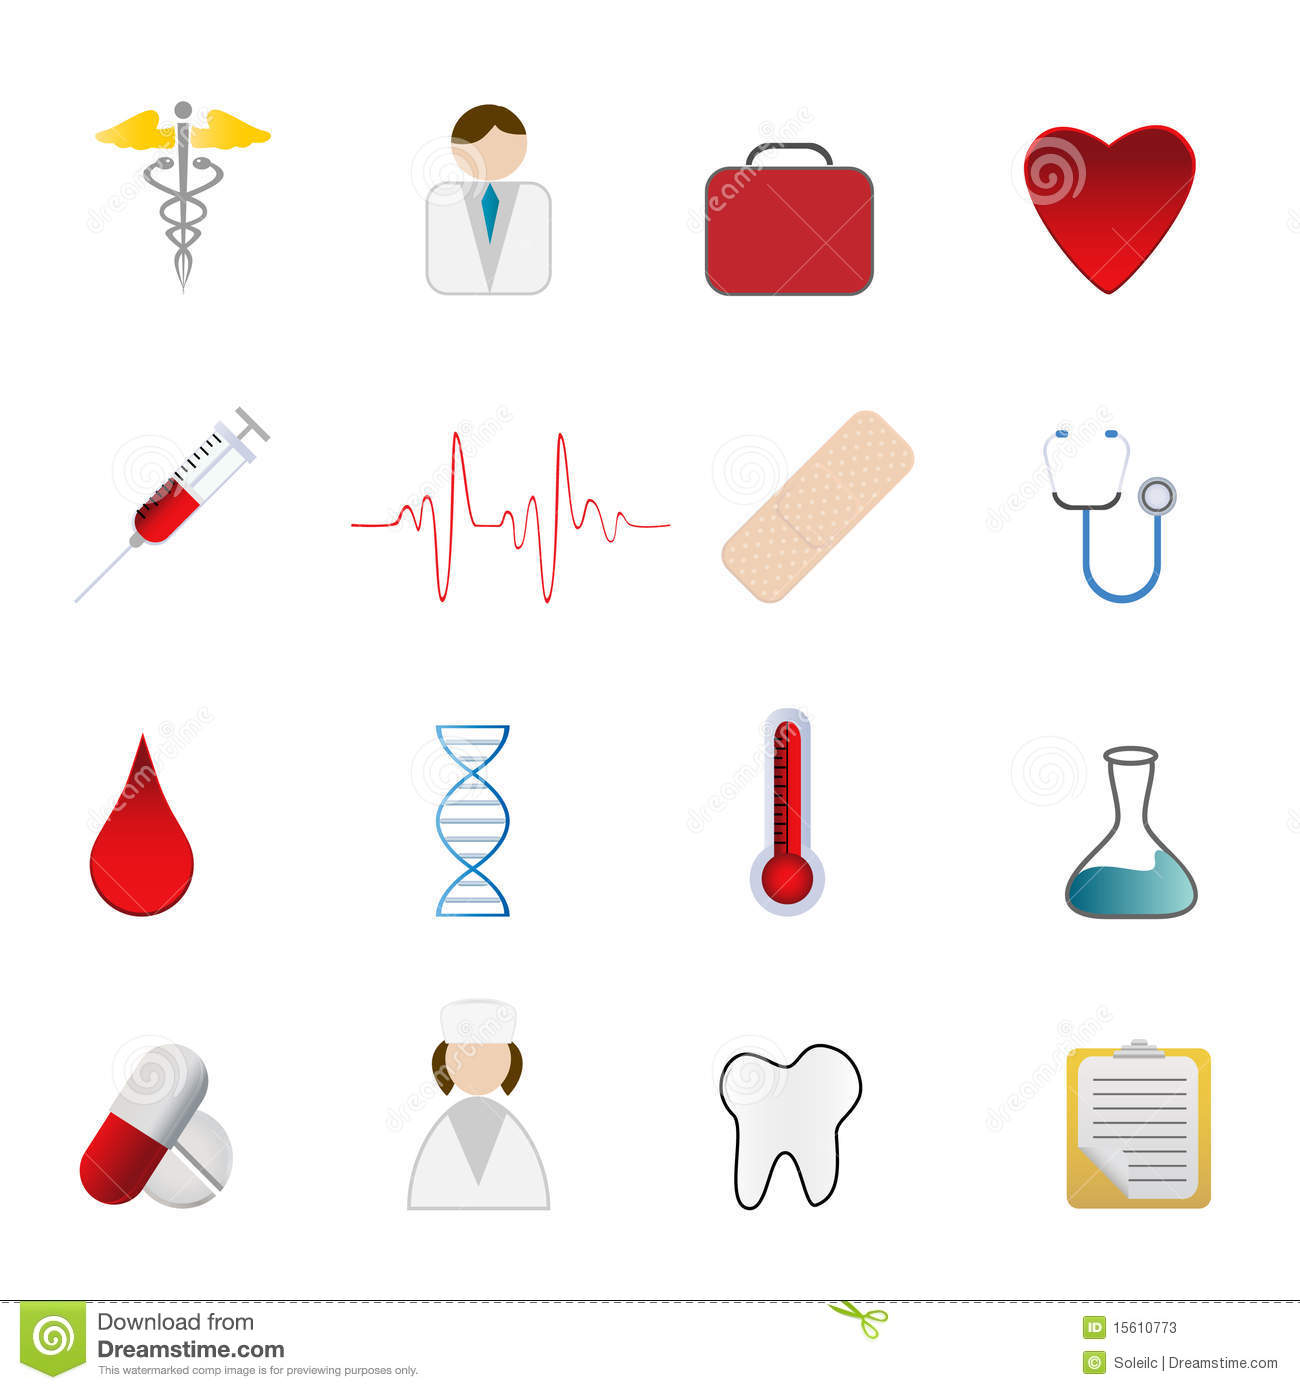 Medical Health Care Symbols Stock Vector - Illustration of ...